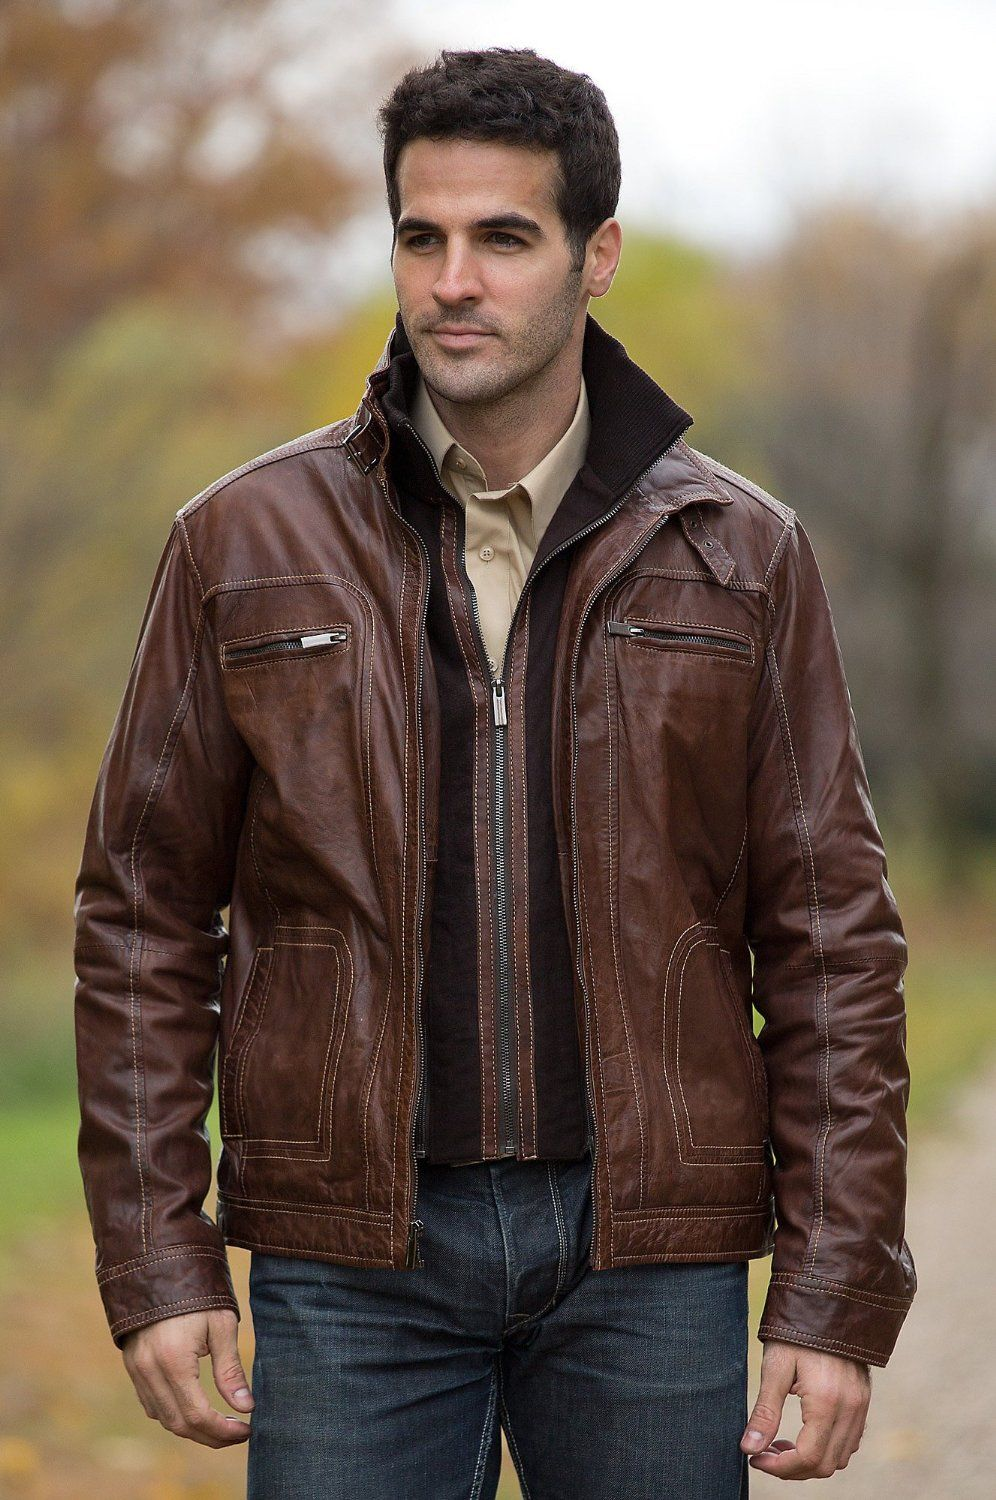 Men's dark brown leather bomber jacket – New Fashion Photo Blog